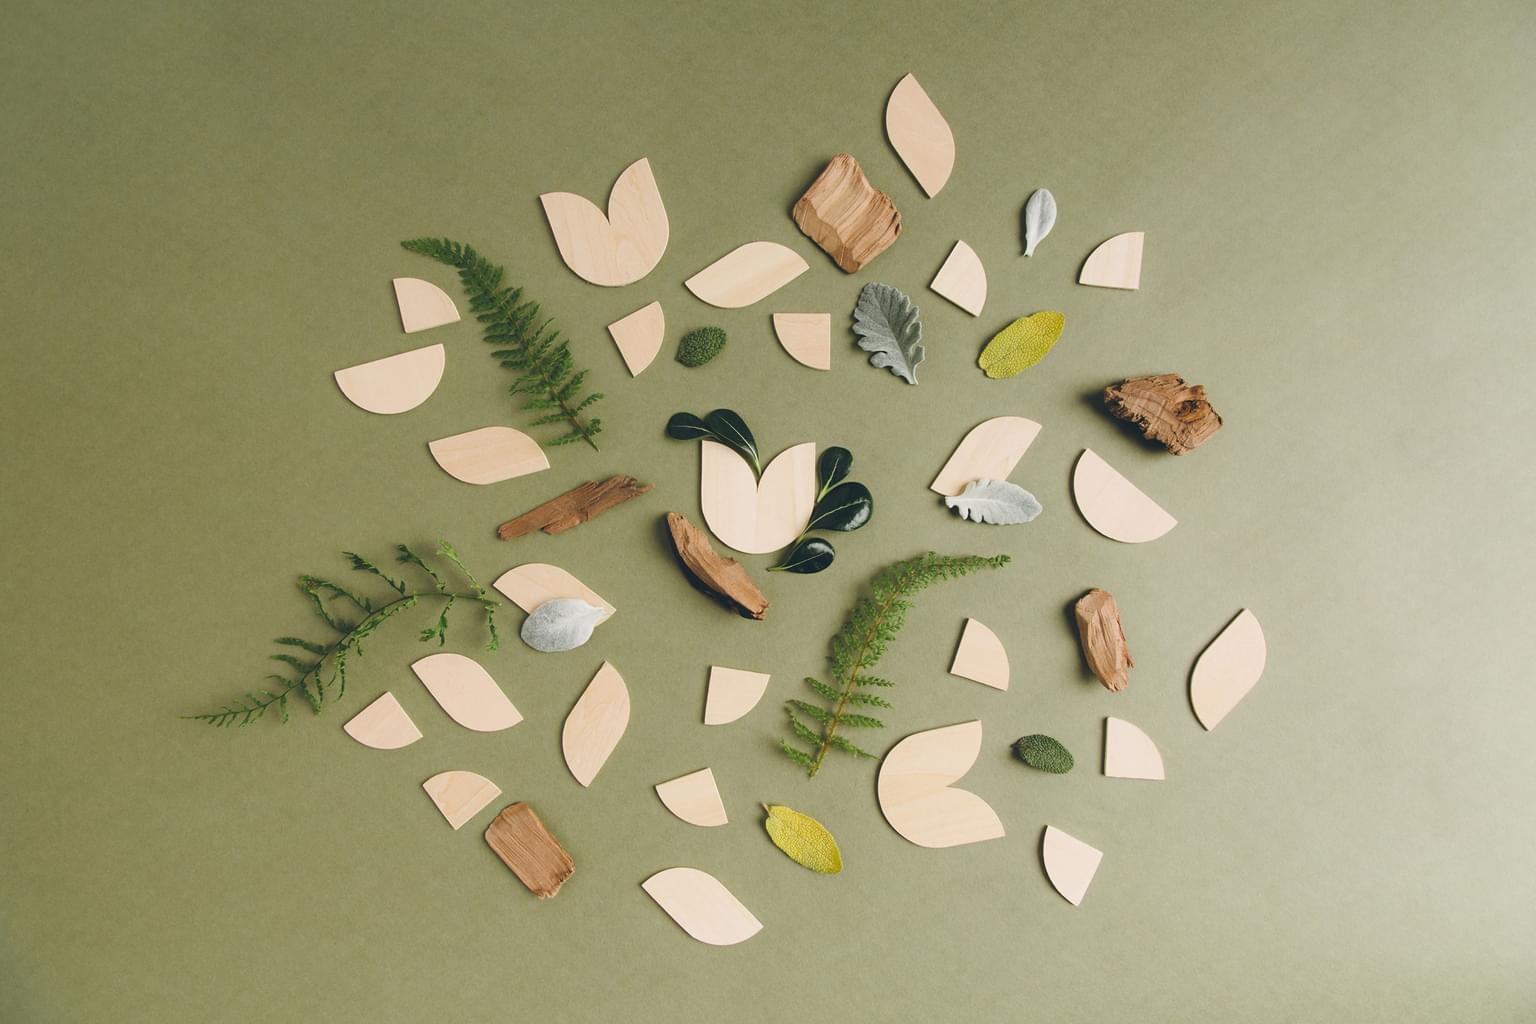 Assorted shapes, twigs, leaves and natural elements arranged in a pattern